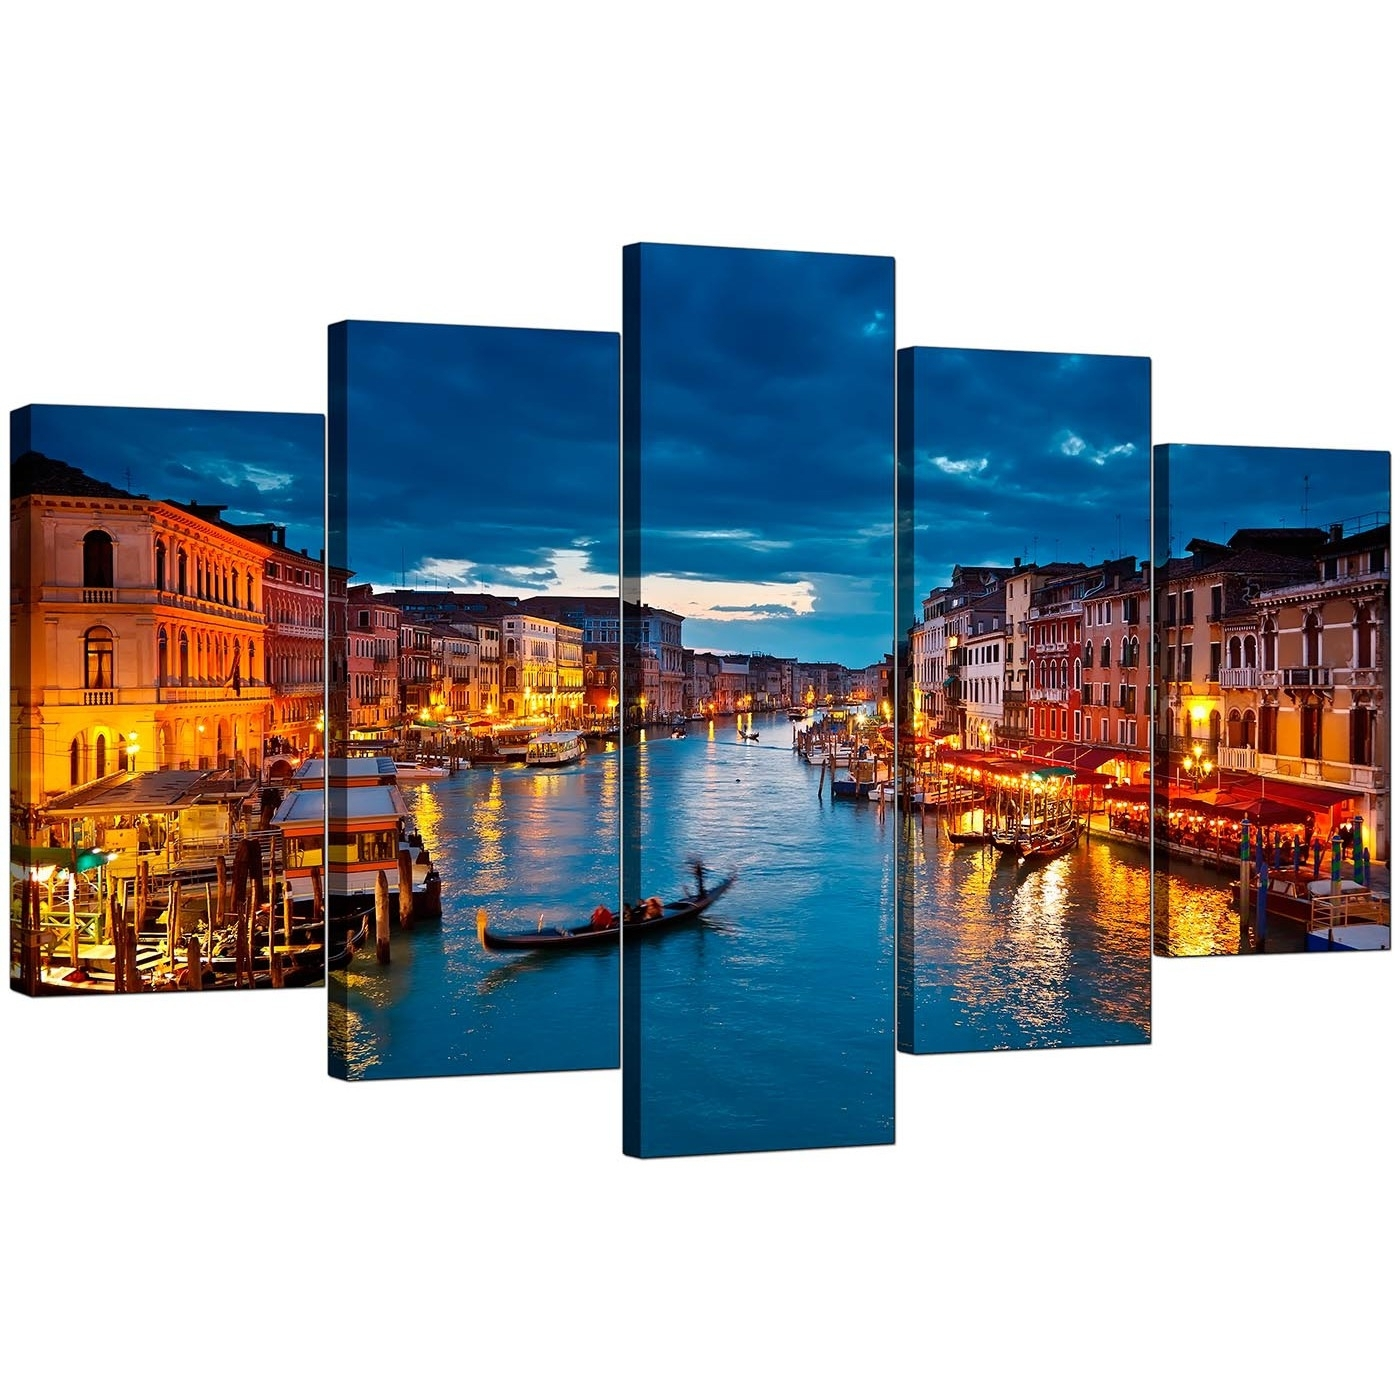 Venice Italy Canvas Prints For Your Living Room – 5 Panel With Regard To Recent Canvas Wall Art Of Italy (View 13 of 15)